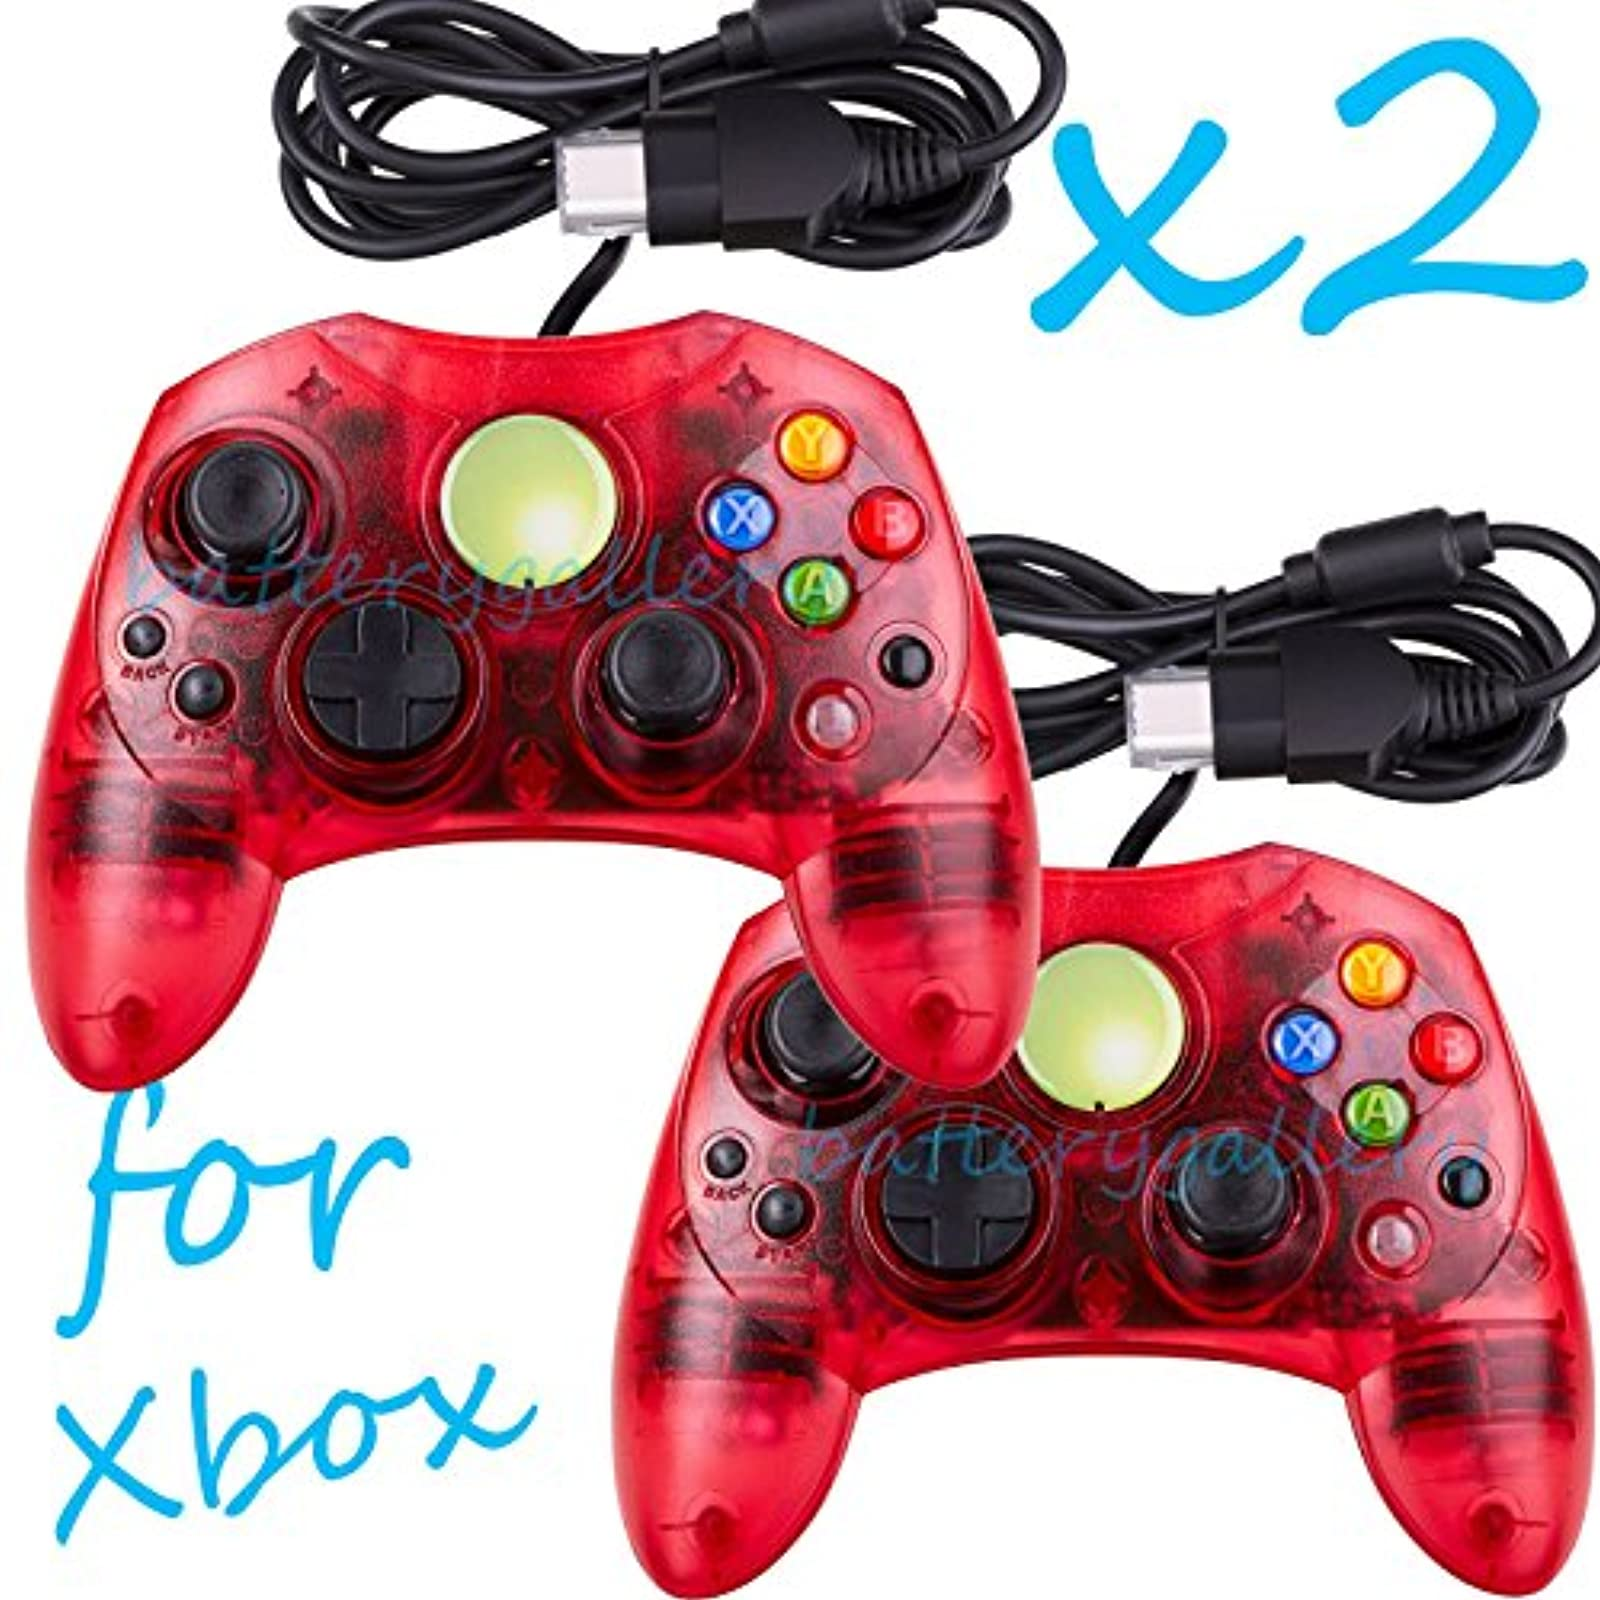 2 Lot Red Controller Control Pad For Original Microsoft Xbox X System